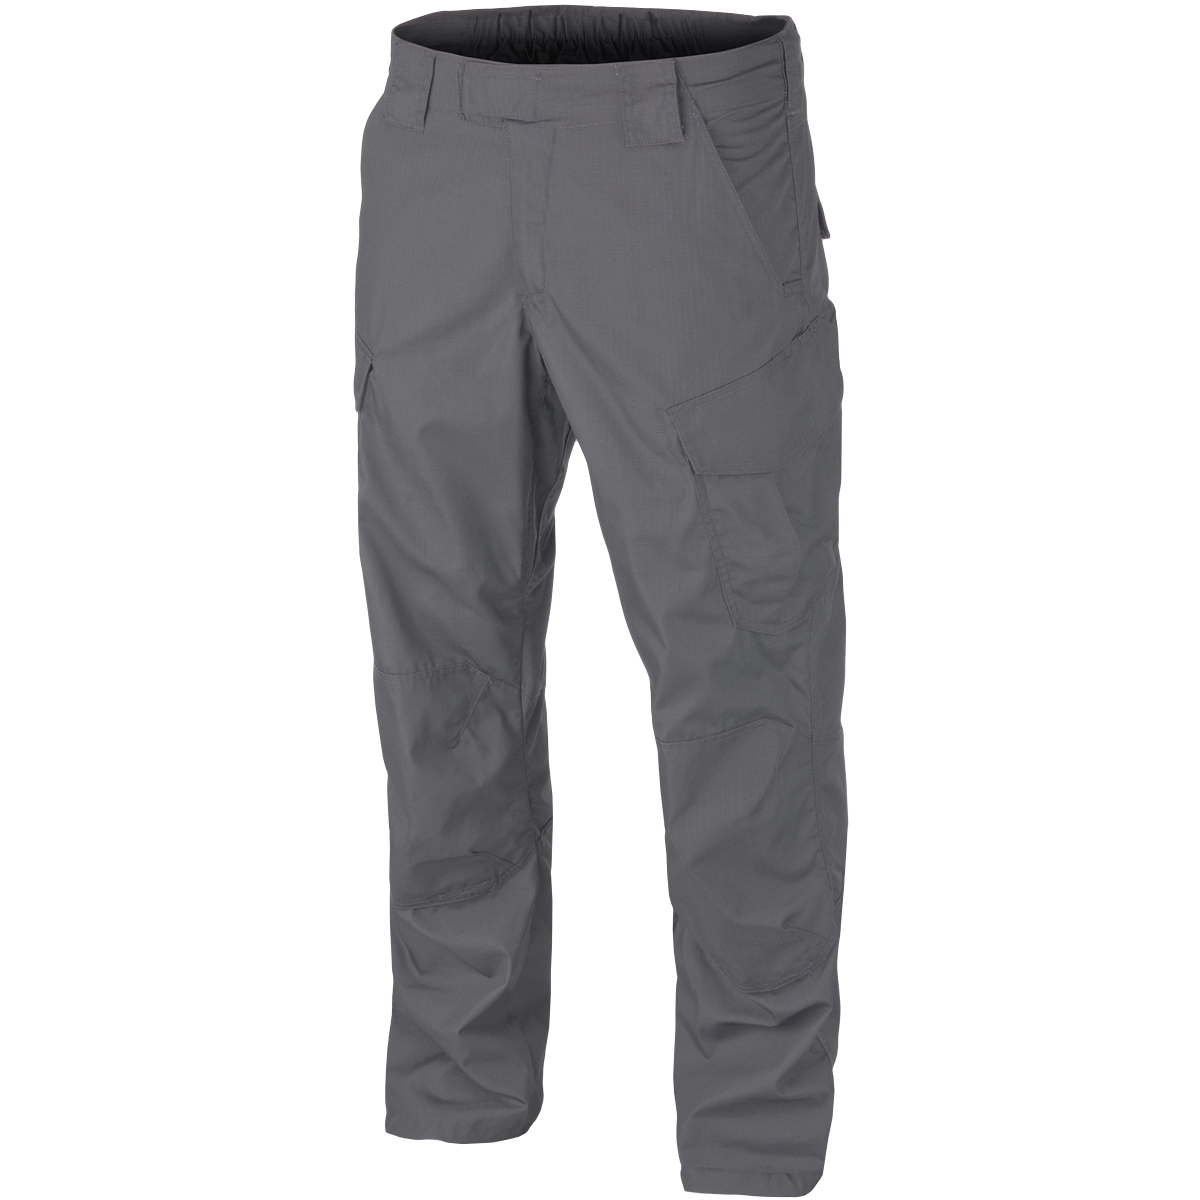 Best fitting mens dark grey cotton cargo pants trousers with belt online, these casual cargo pants features with multi pockets, straight leg and drawstring bottom! JavaScript seems to .